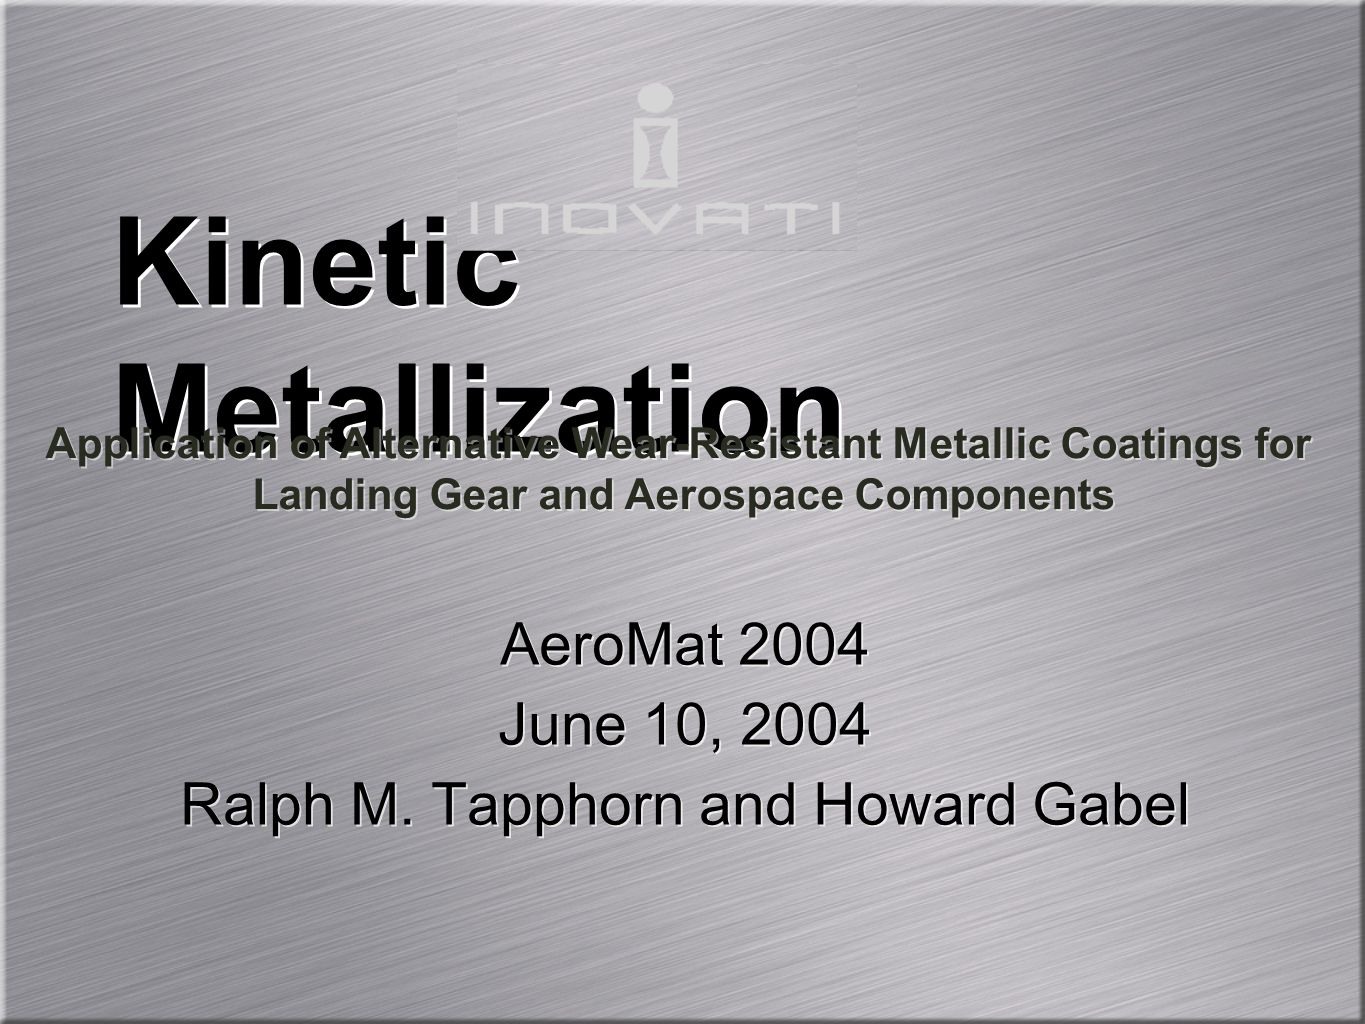 Alternatives for Hard Chrome Coatings Introduction to Kinetic Metallization Overview of Process Technical and Cost Advantages Kinetic Metallized WC-Co Coatings Kinetic Metallized MCrAlY Coatings Alternatives for Hard Chrome Coatings Introduction to Kinetic Metallization Overview of Process Technical and Cost Advantages Kinetic Metallized WC-Co Coatings Kinetic Metallized MCrAlY Coatings Overview